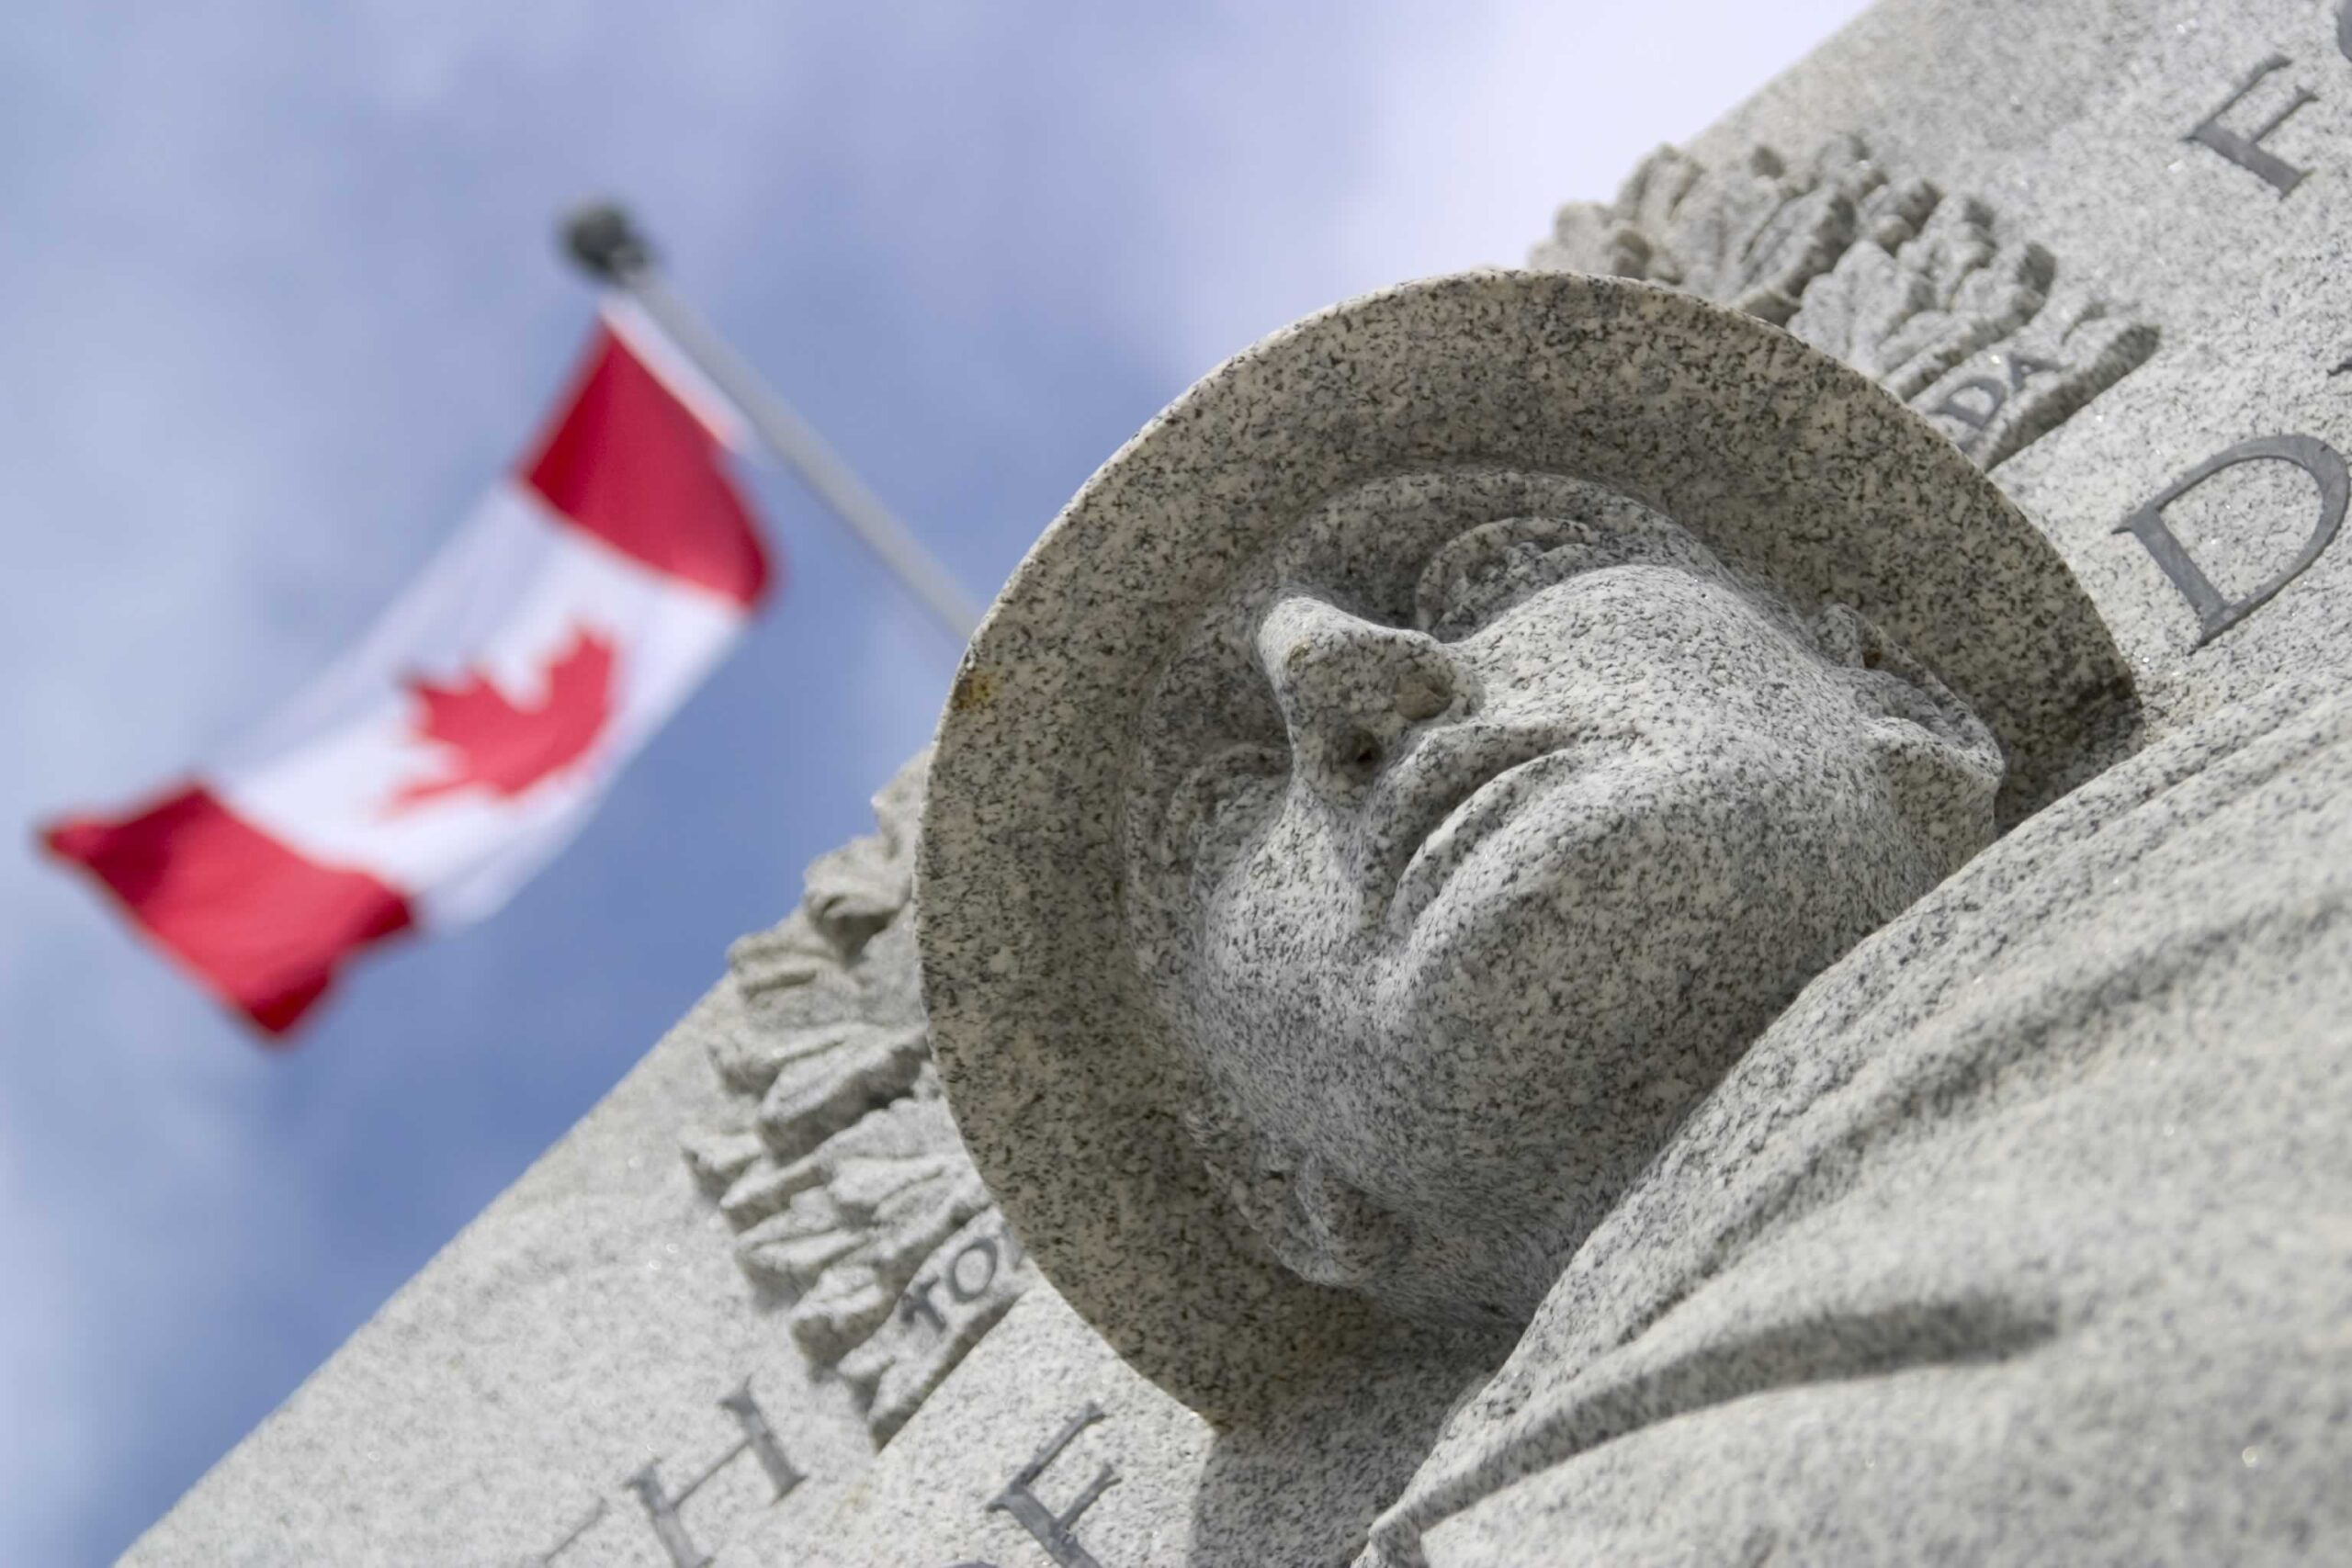 War monument with Canadian flag waving against graduated blue sky.